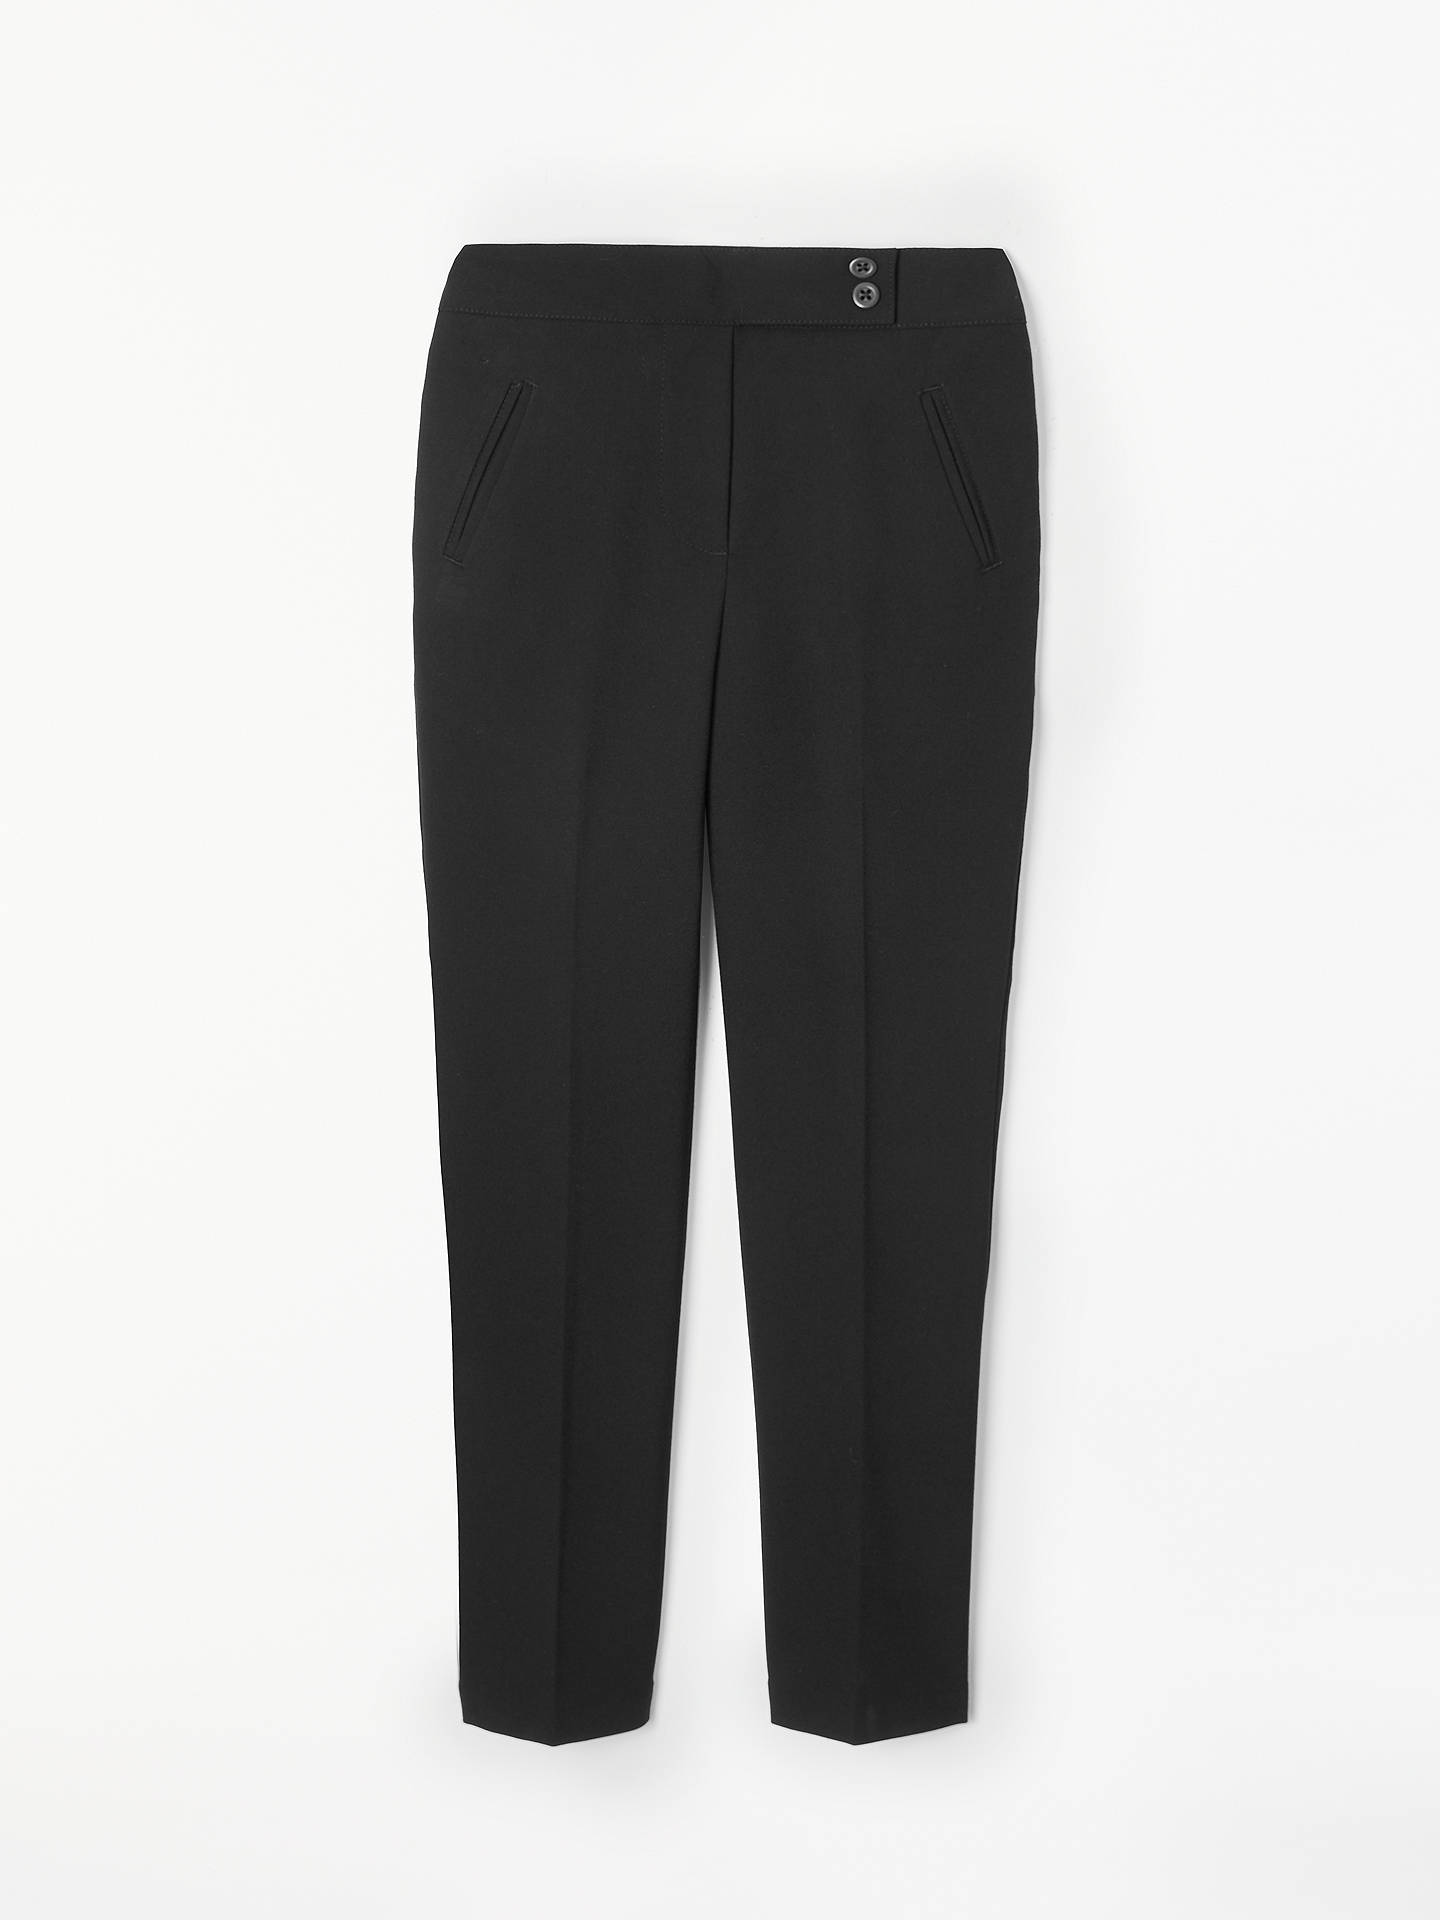 BuyJohn Lewis & Partners Girls' Easy Care Adjustable Waist Button School Trousers, Black, 4 years Online at johnlewis.com